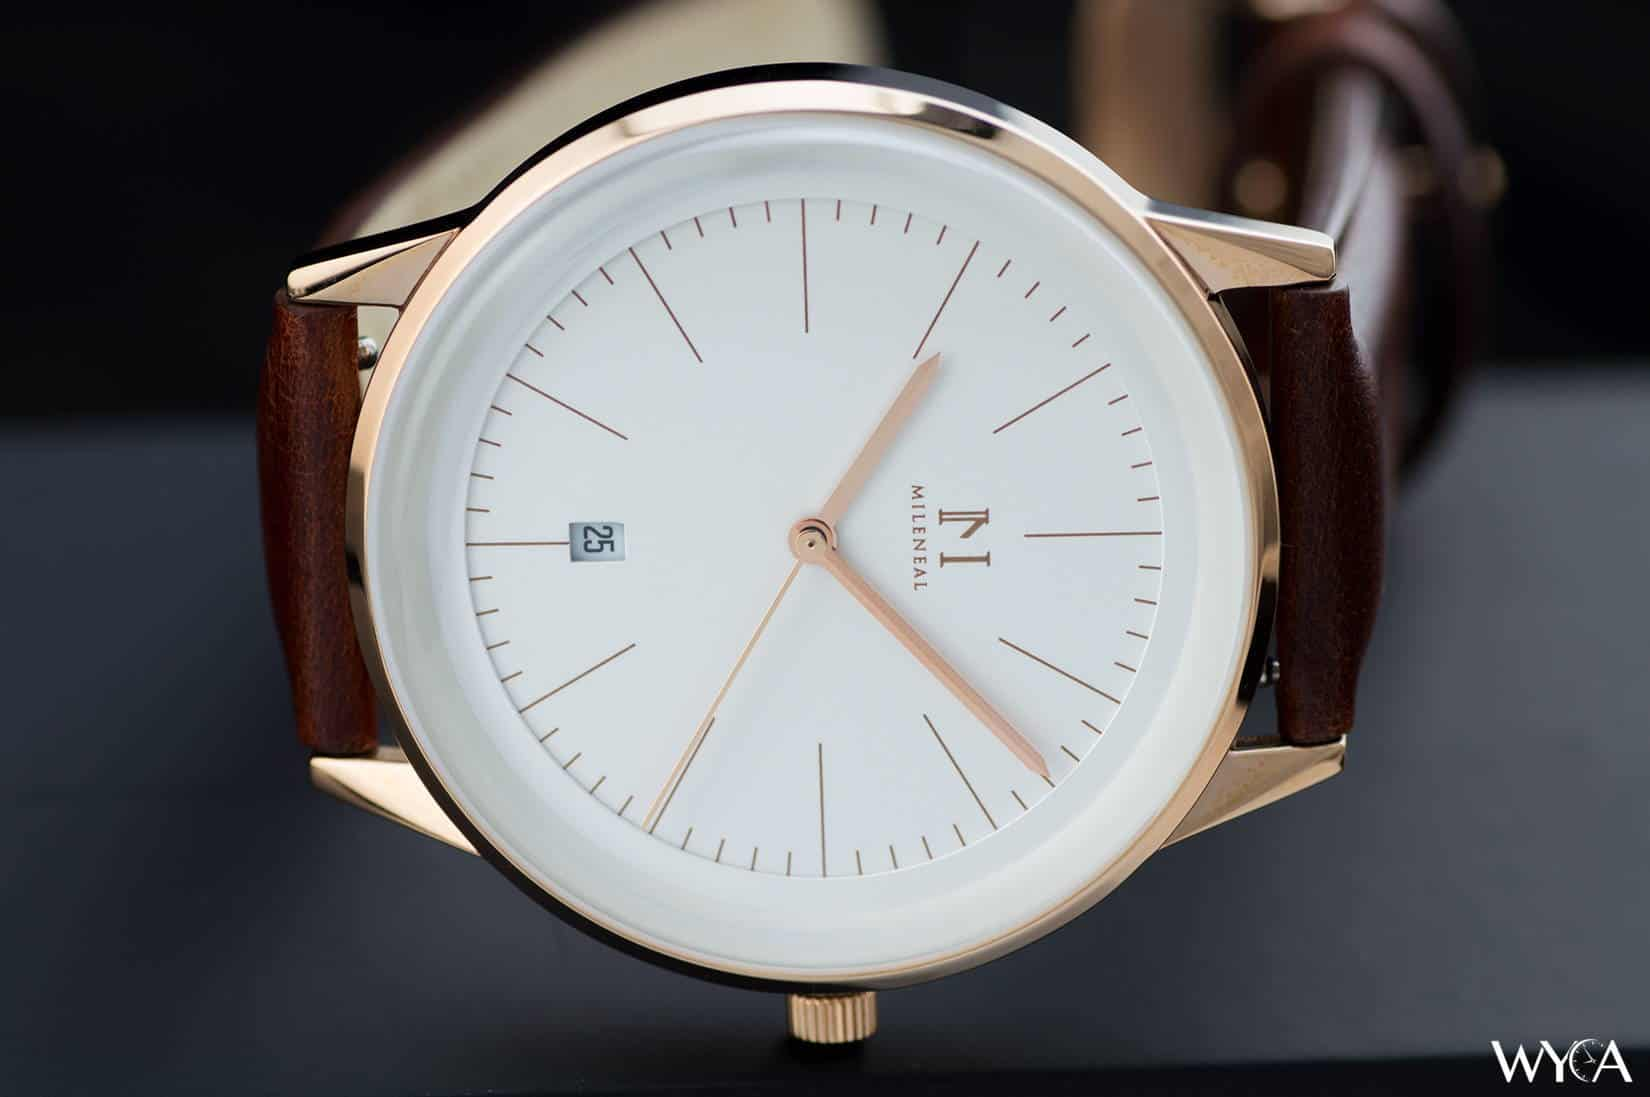 Mileneal Classic Hands-On Watch Review